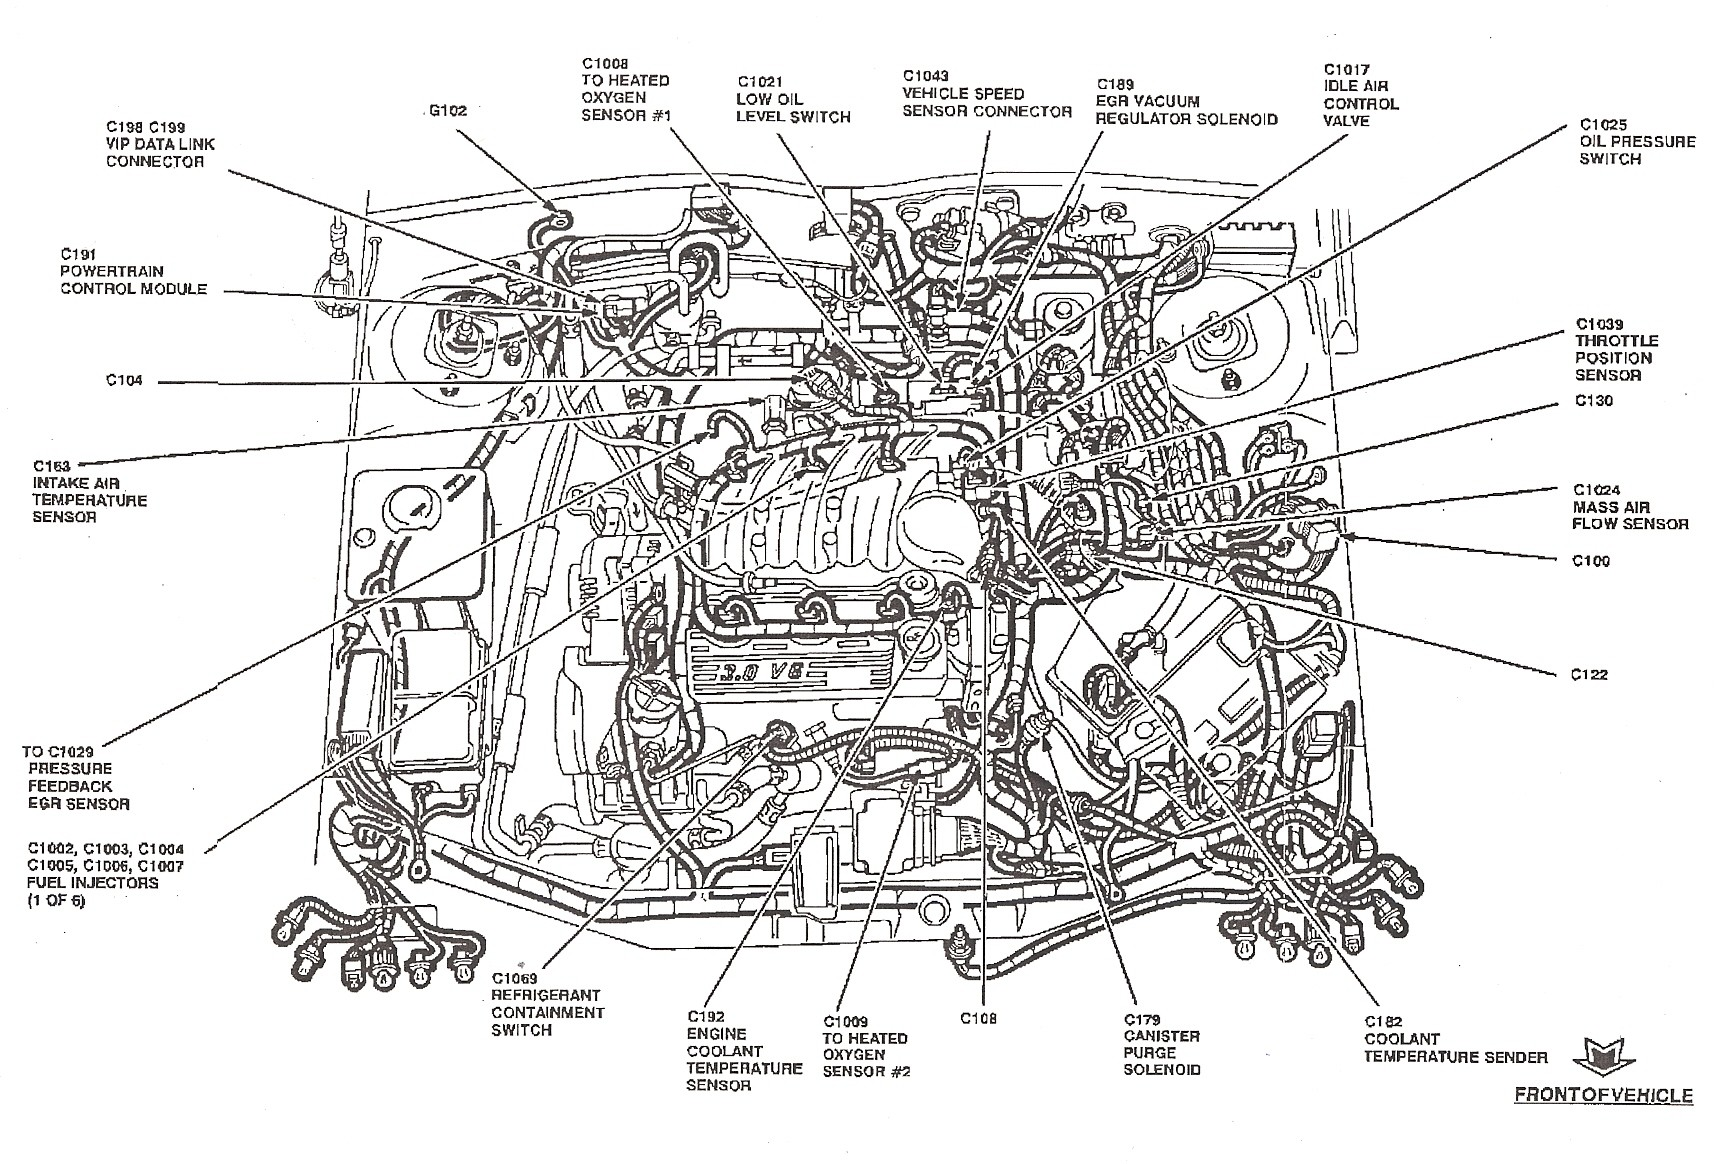 2011 Ford Taurus Se Wiring Diagram Trusted Engine Fusion V6 Enthusiast Diagrams U2022 Backup Camera